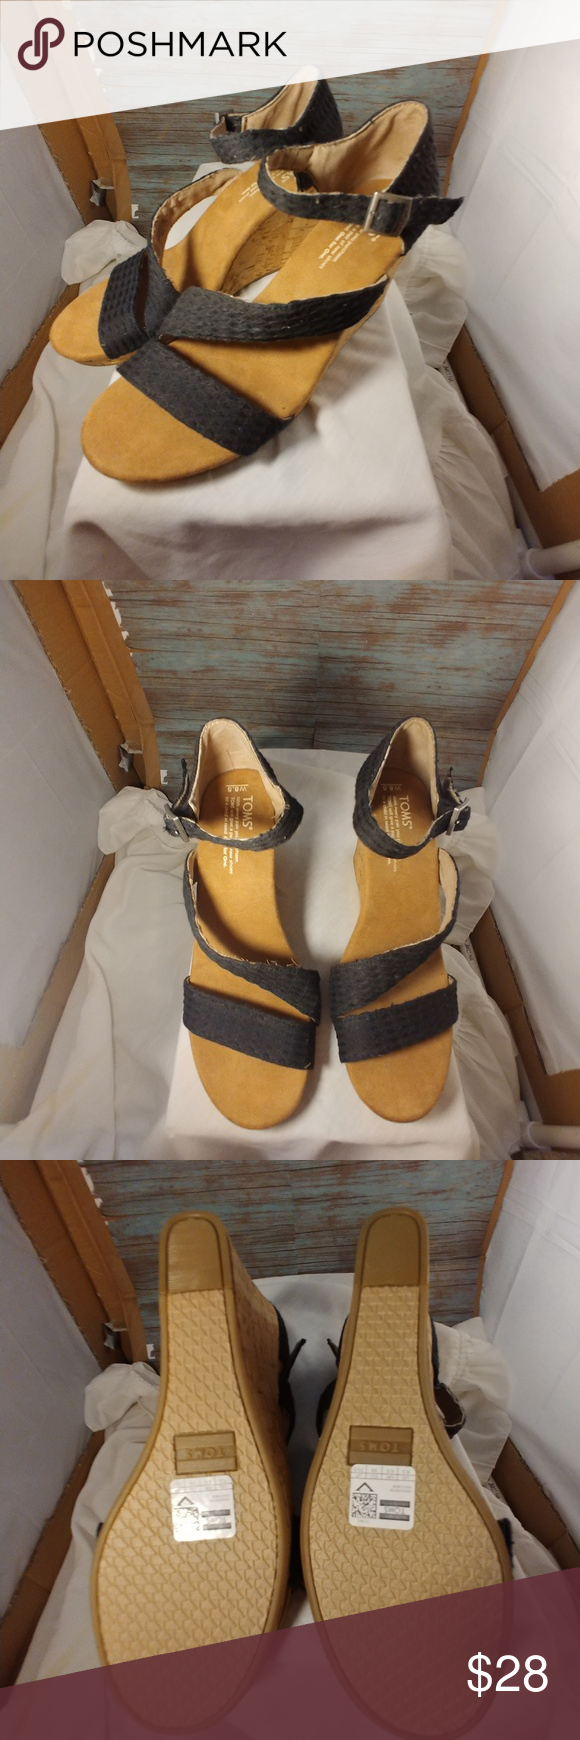 Tom's Wedges Tom's Wedges in good condition. The sole appears to be new. These shoes are 8.5 Toms Shoes Wedges #tomwedges Tom's Wedges Tom's Wedges in good condition. The sole appears to be new. These shoes are 8.5 Toms Shoes Wedges #tomwedges